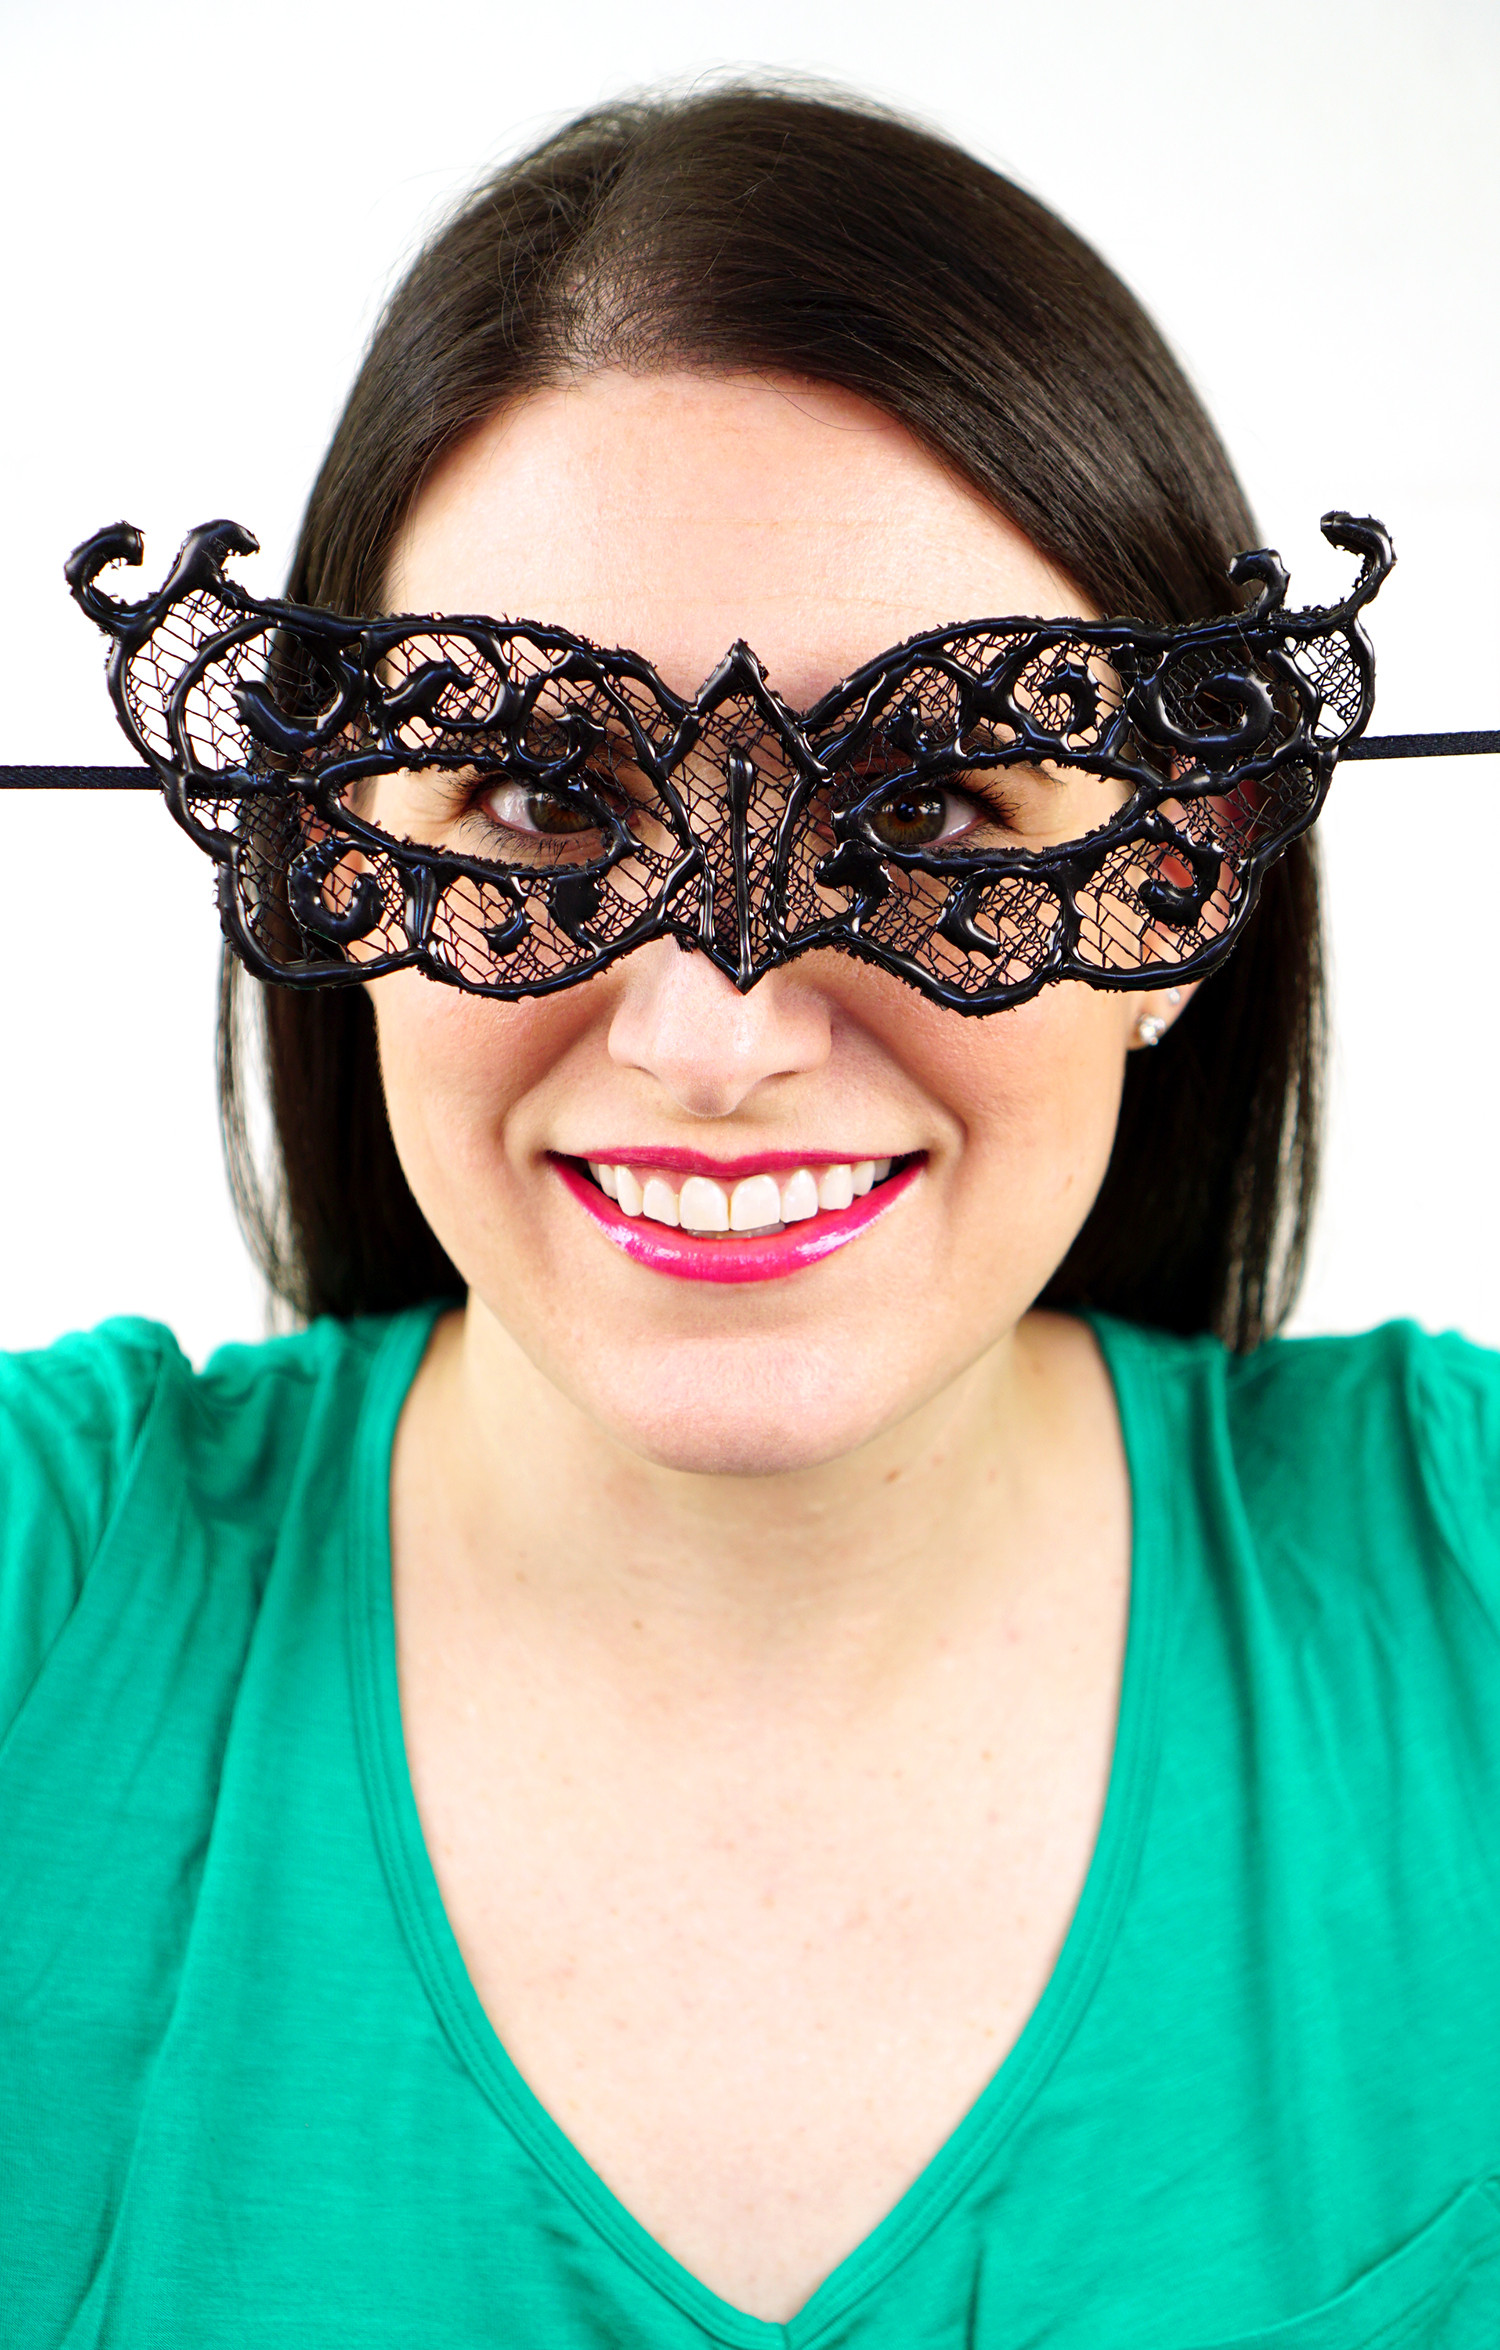 DIY Lace Mask  Easy DIY Lace Masquerade Mask from Hot Glue Happiness is